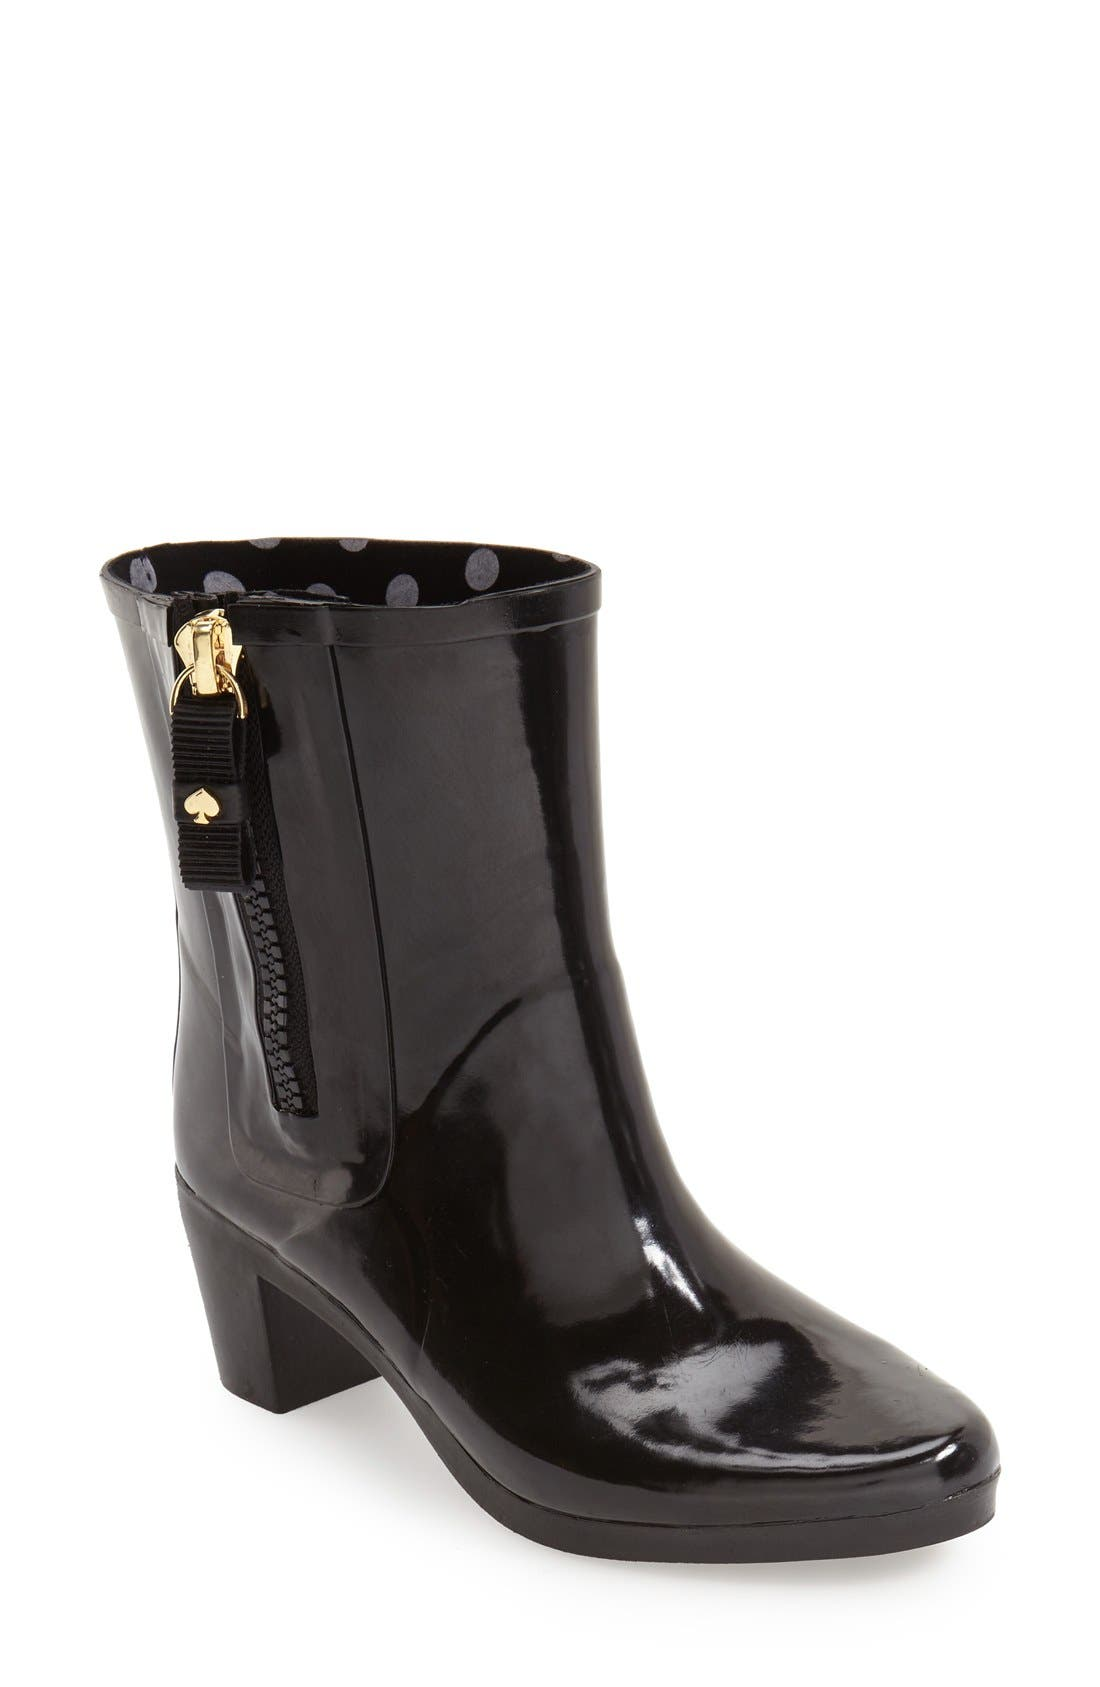 KATE SPADE NEW YORK, 'penny' rain boot, Main thumbnail 1, color, 001